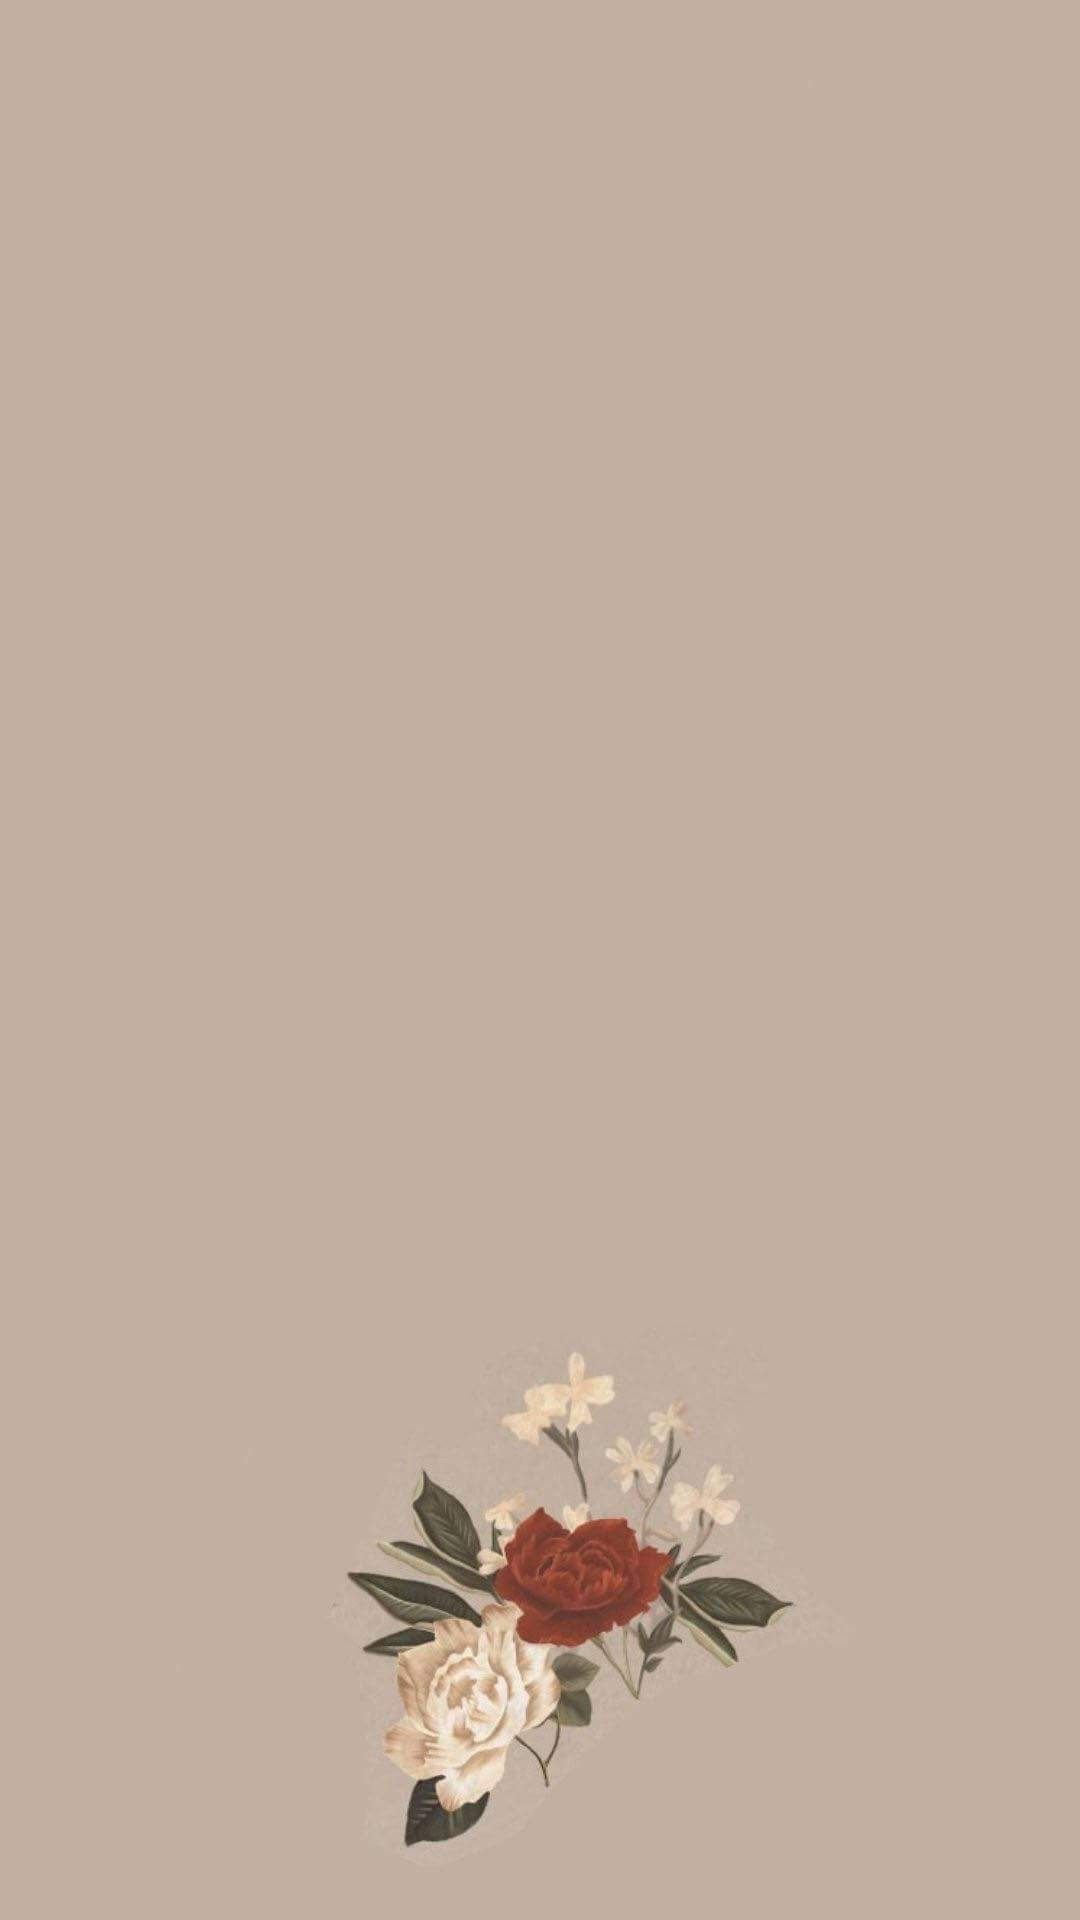 Aesthetic Instagram Android Background : Flowers Wallpaper